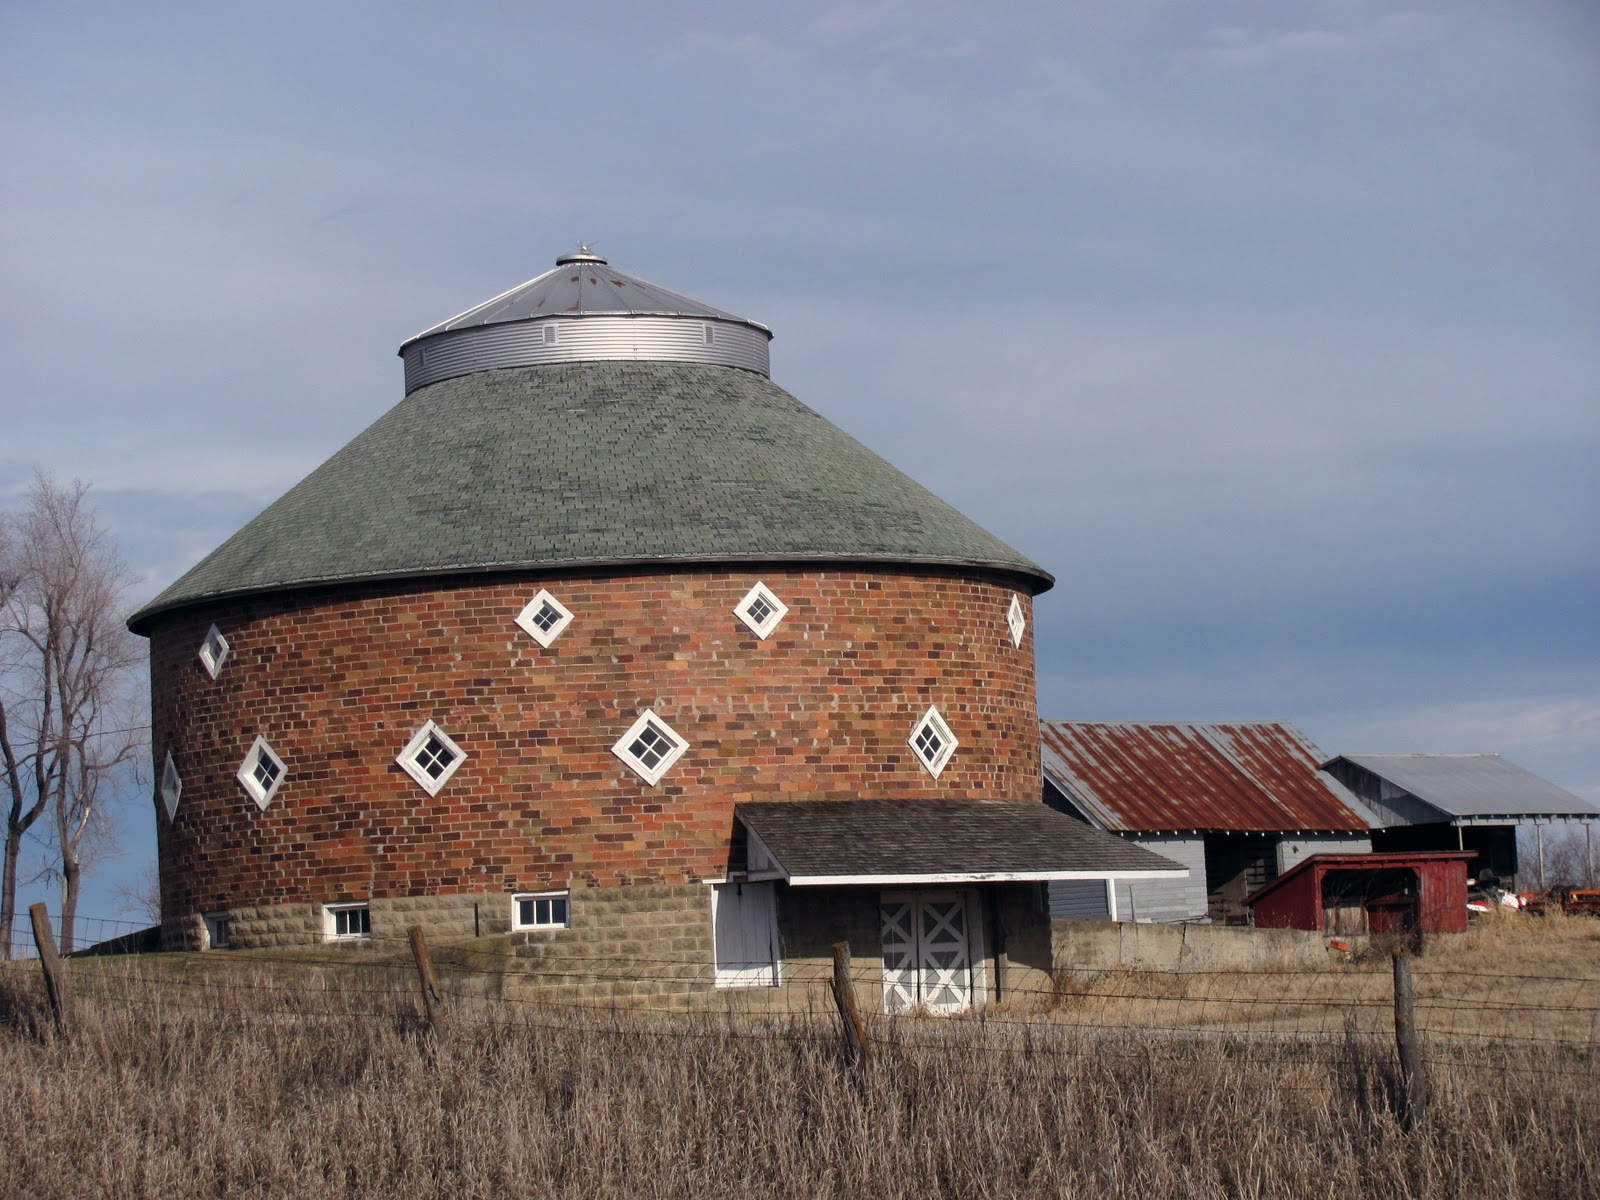 Curving Back An Old Round Barn